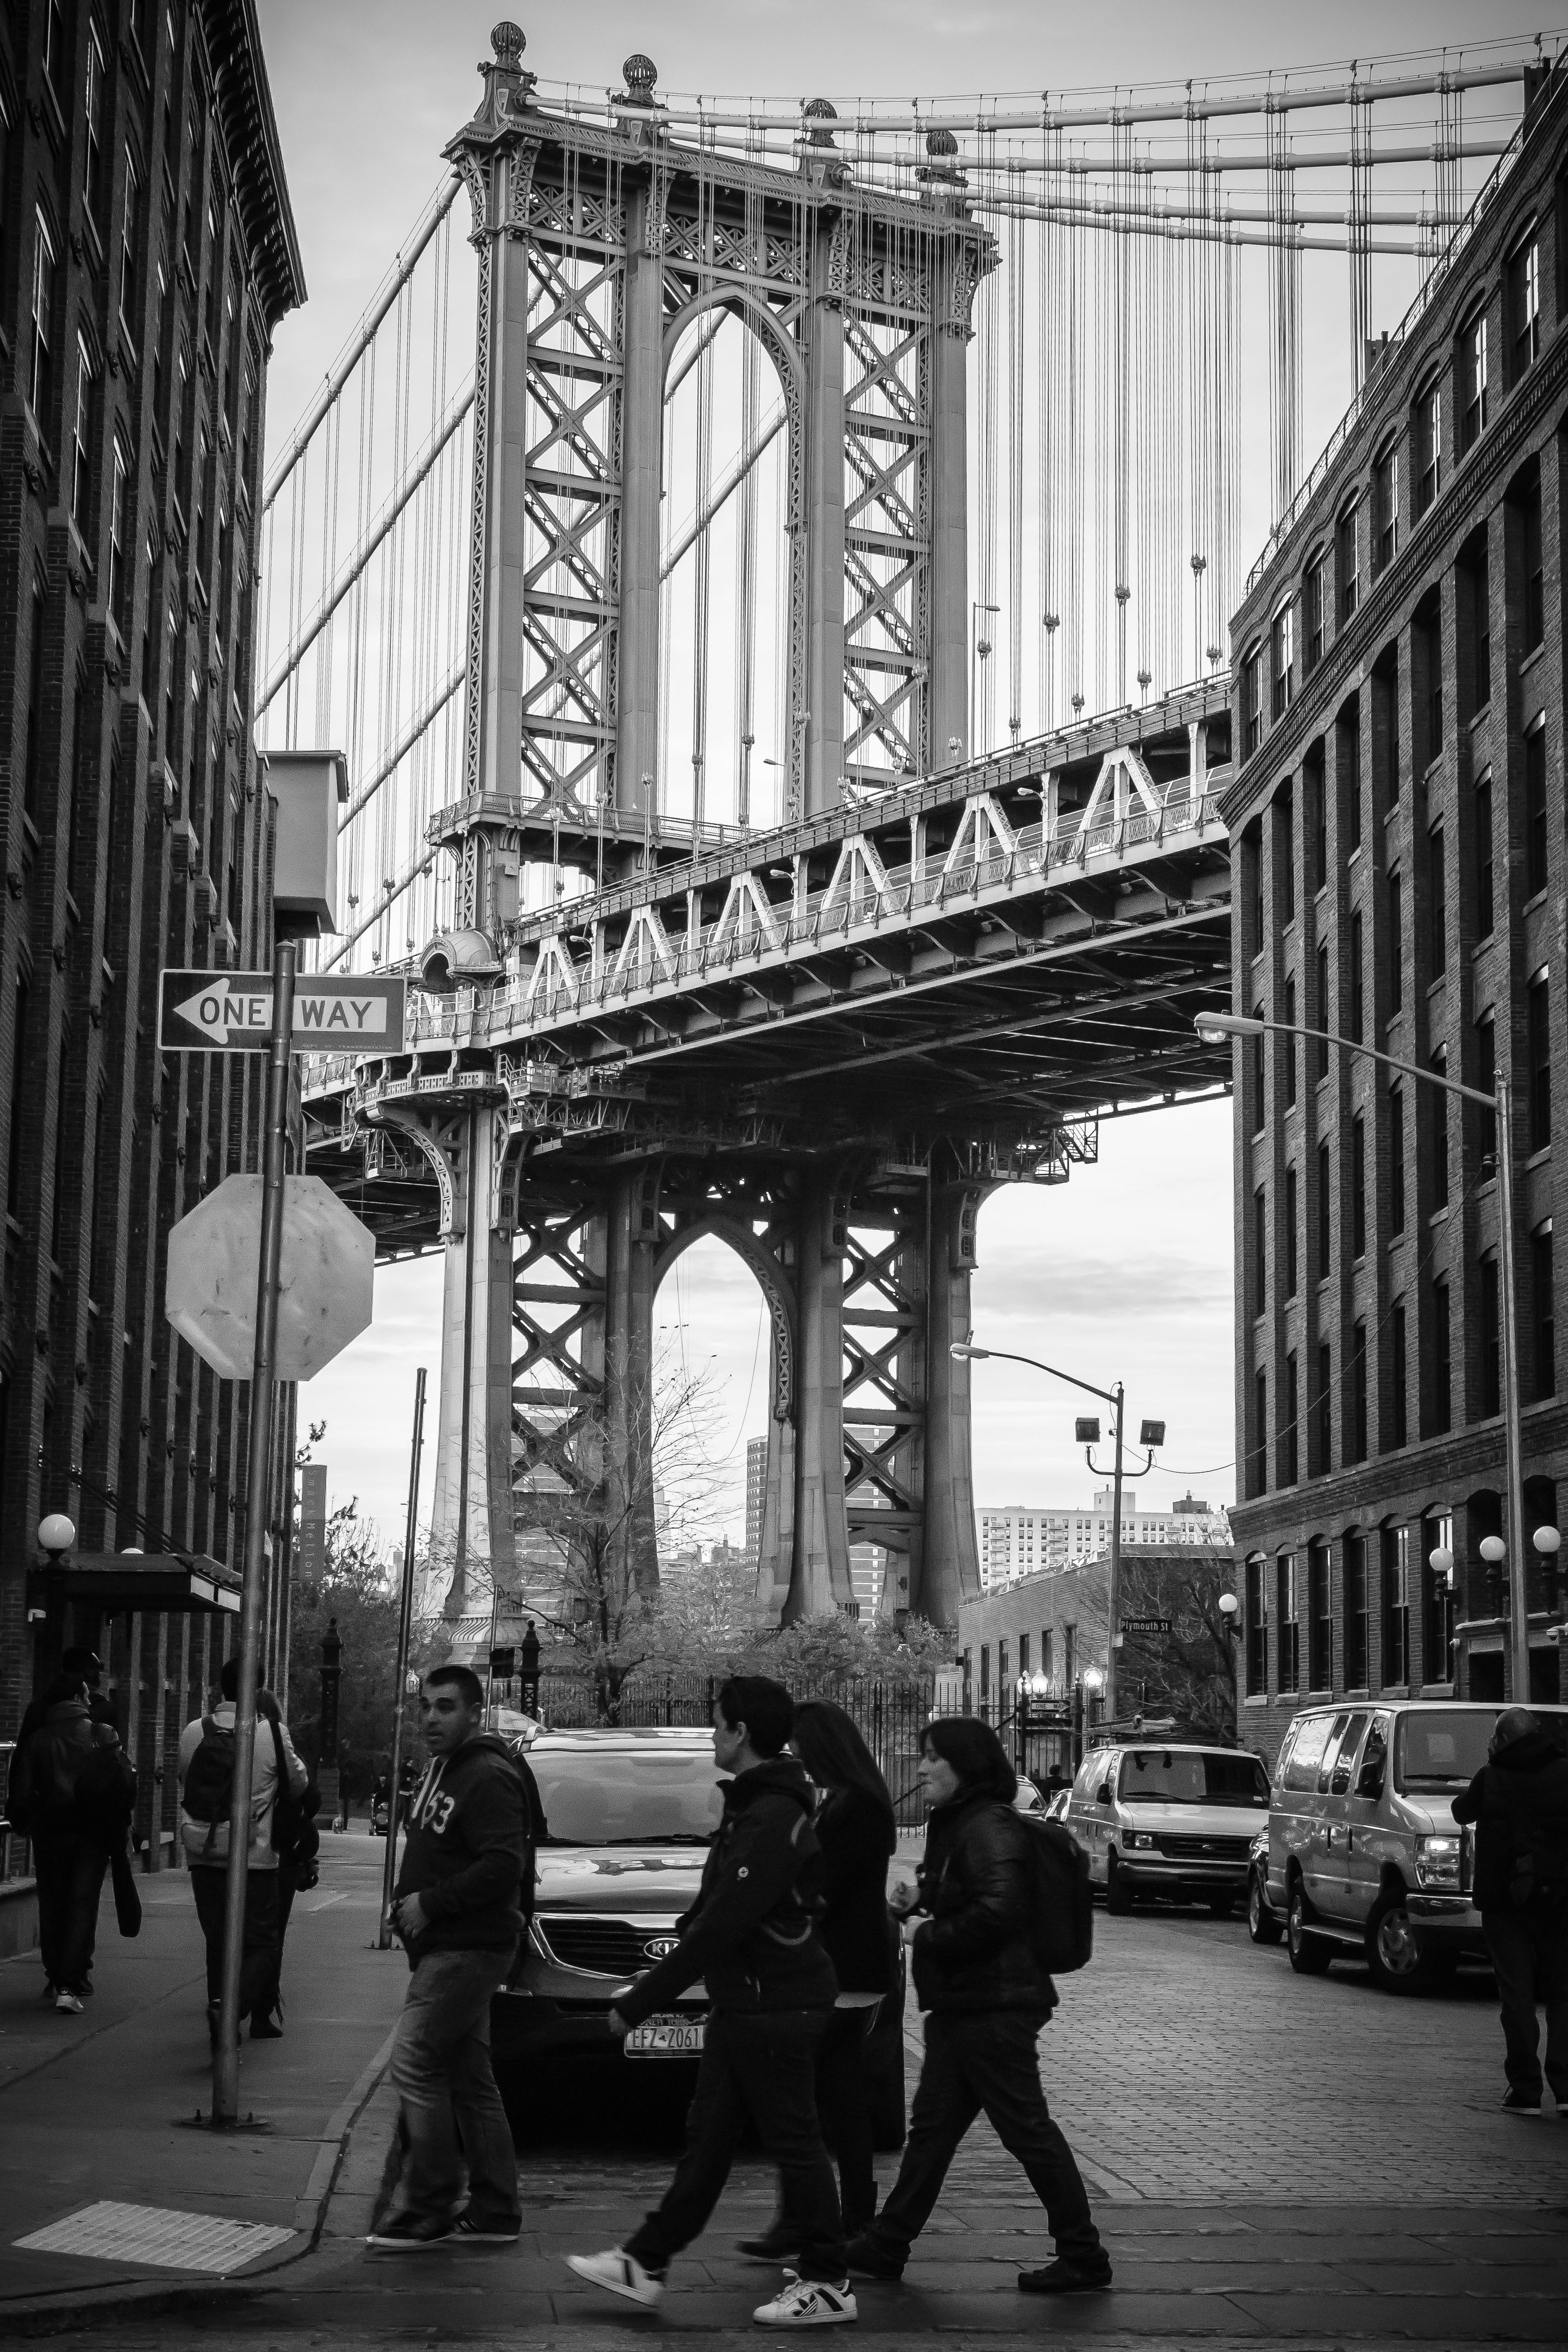 Pablo Barros – Manhatan Bridge by Brooklyn